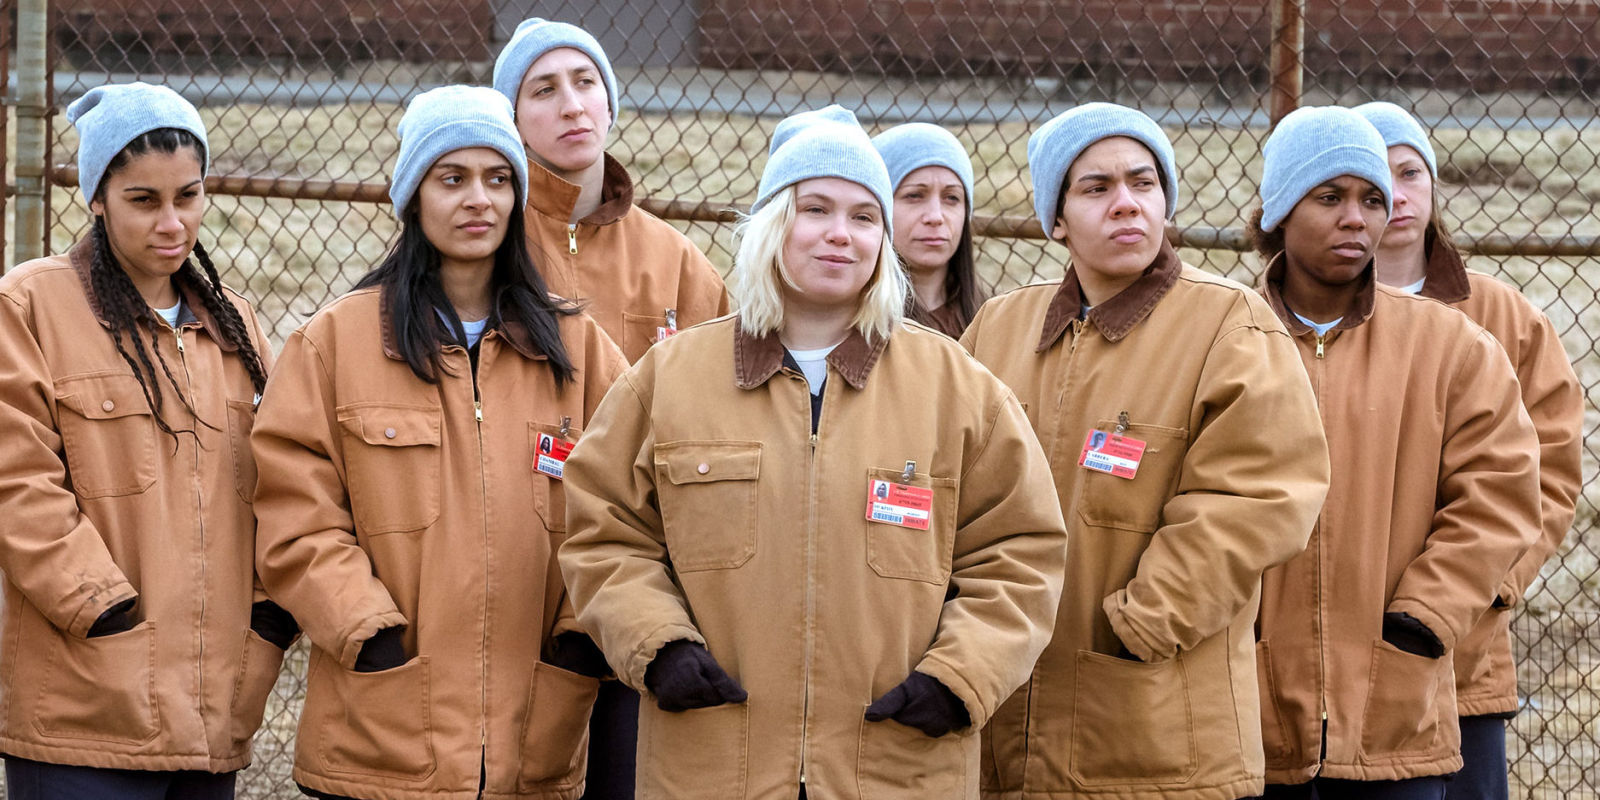 Malison sexta temporada orange is the new black netflix reseña crítica